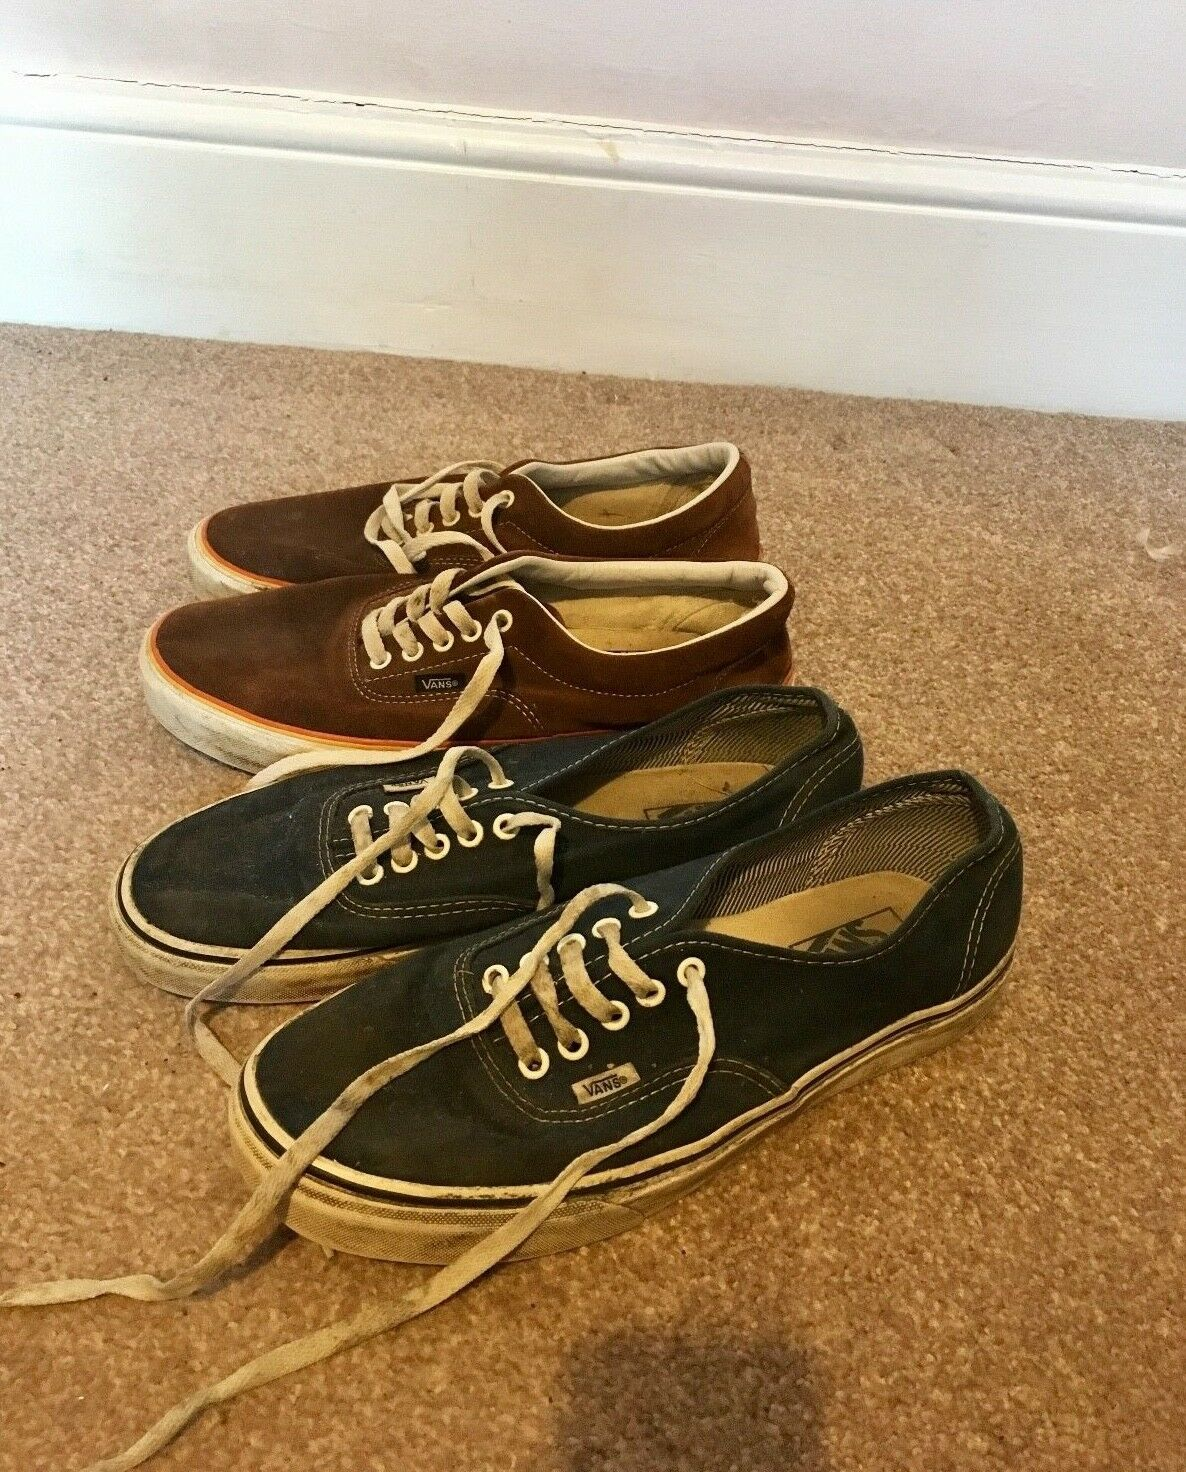 Two pairs of Vans shoes